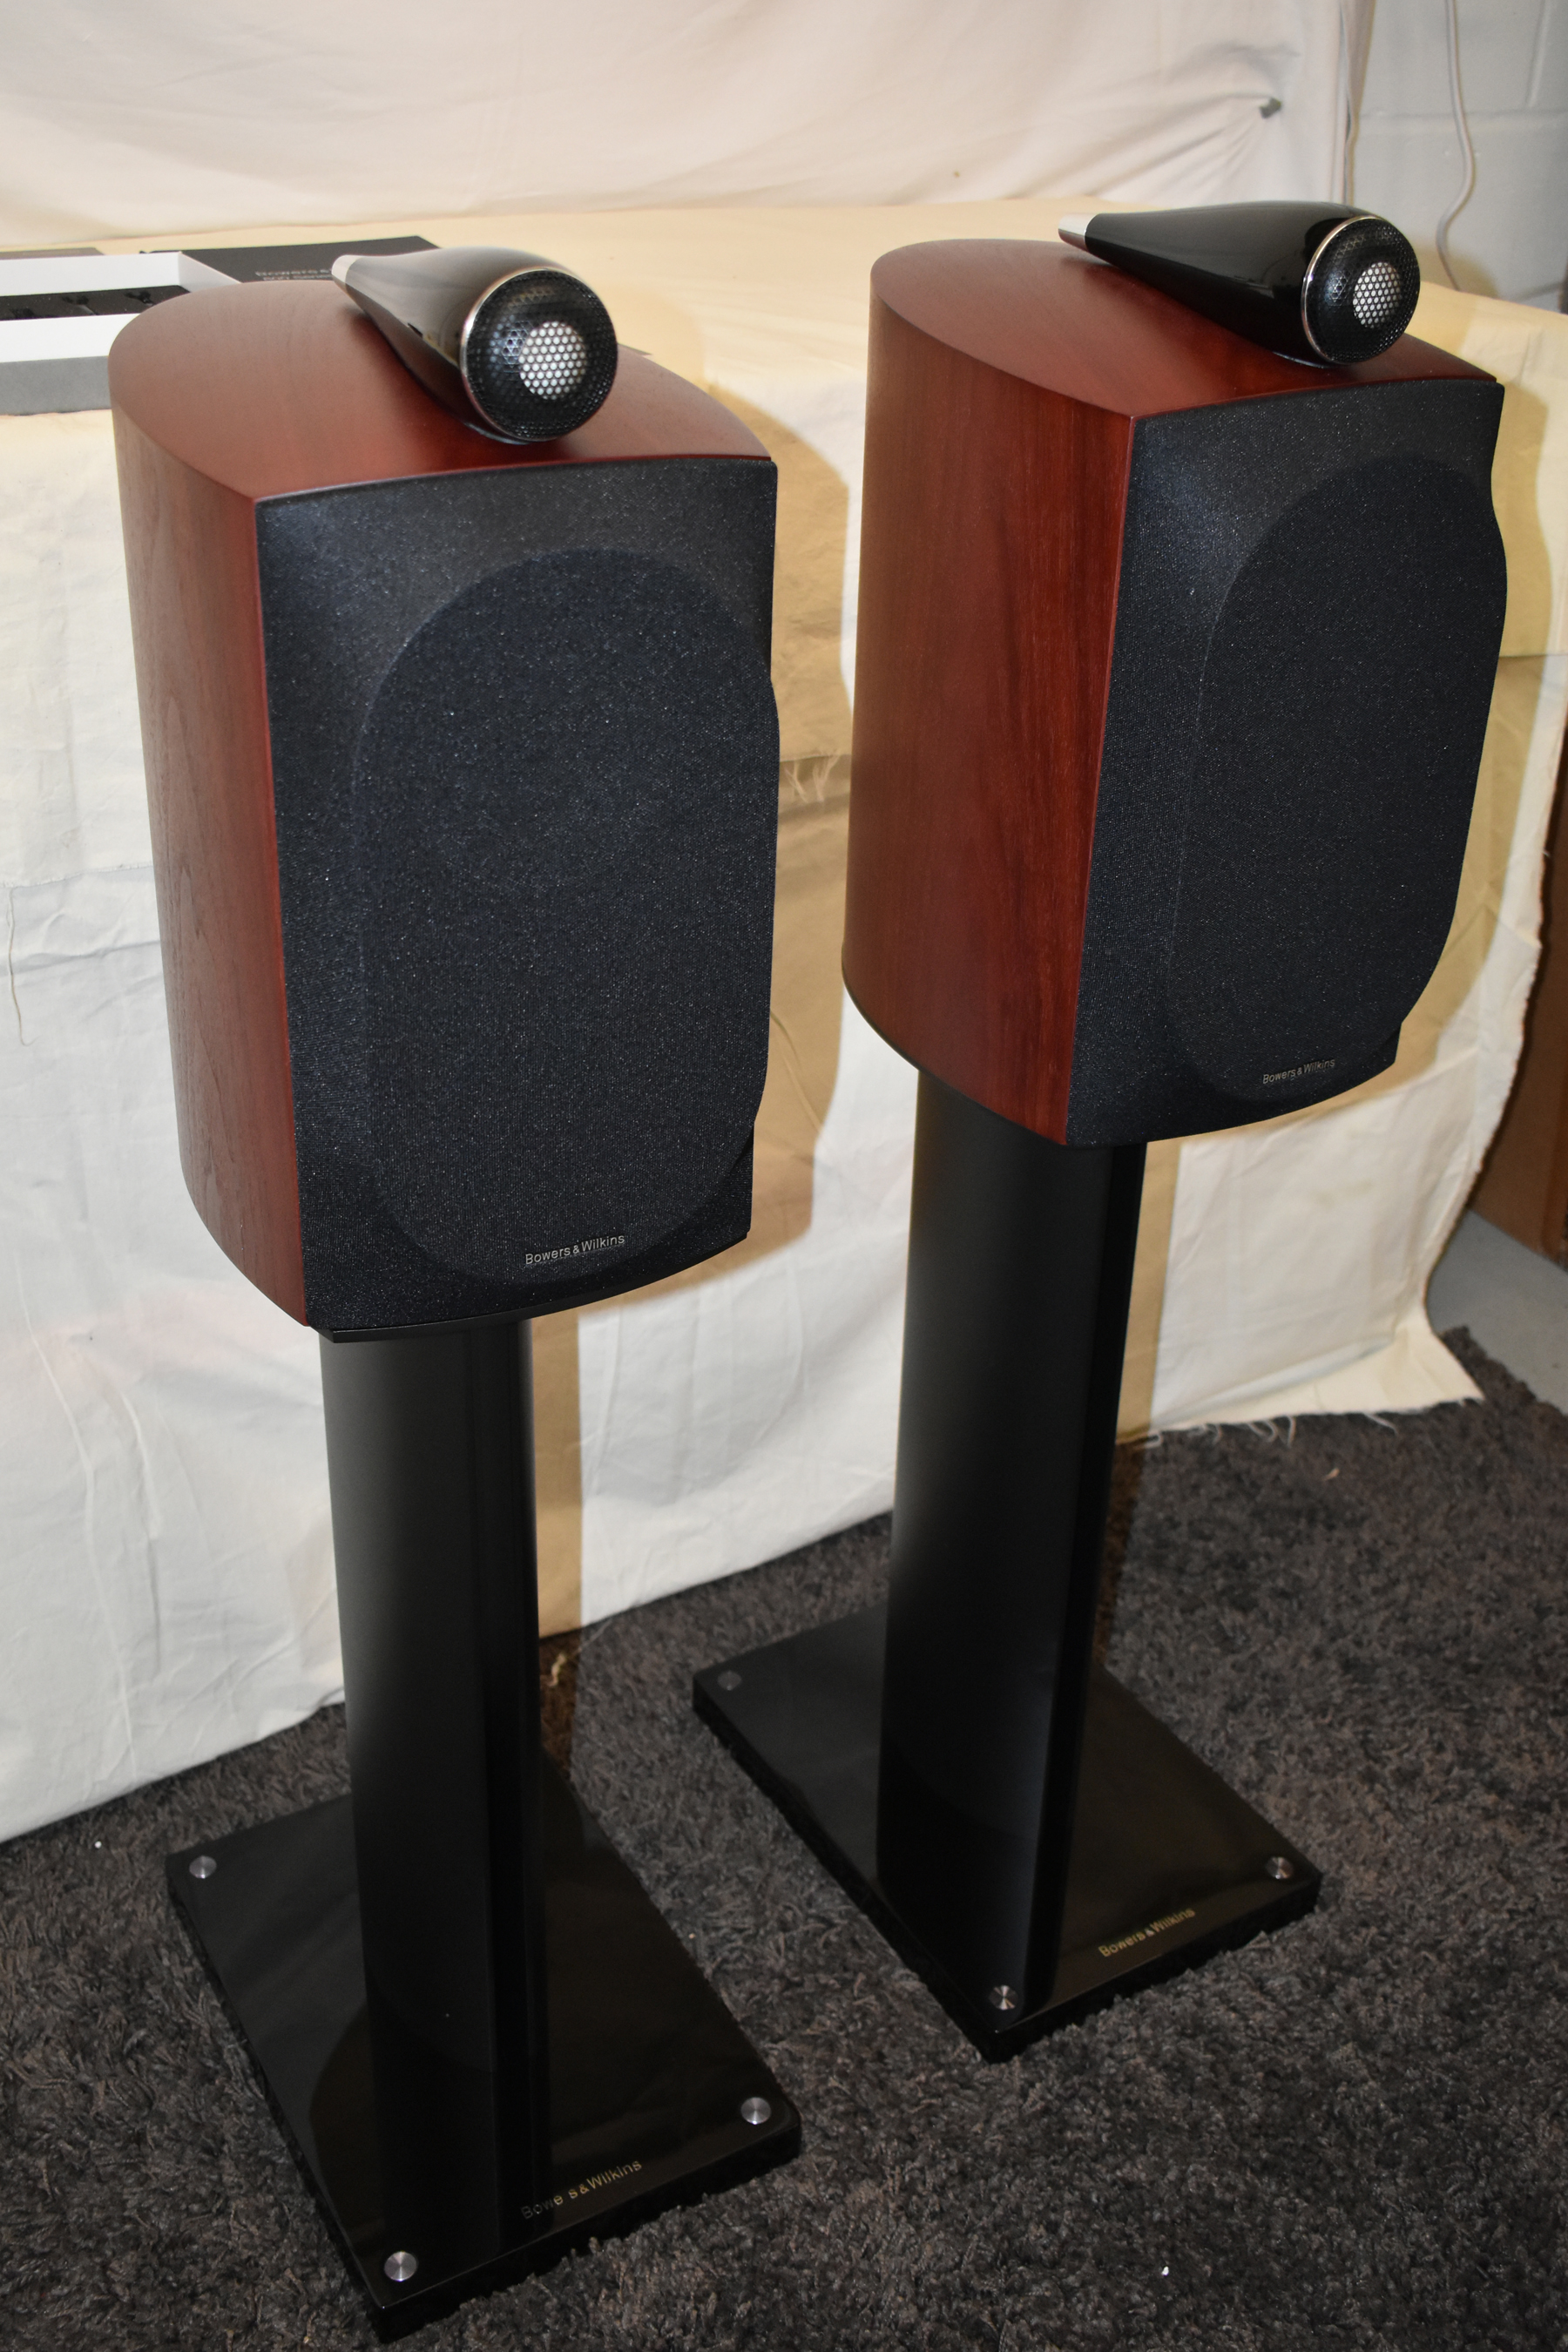 Picture of Bowers & Wilkins B&W 805 D3 Stand Mount Speakers